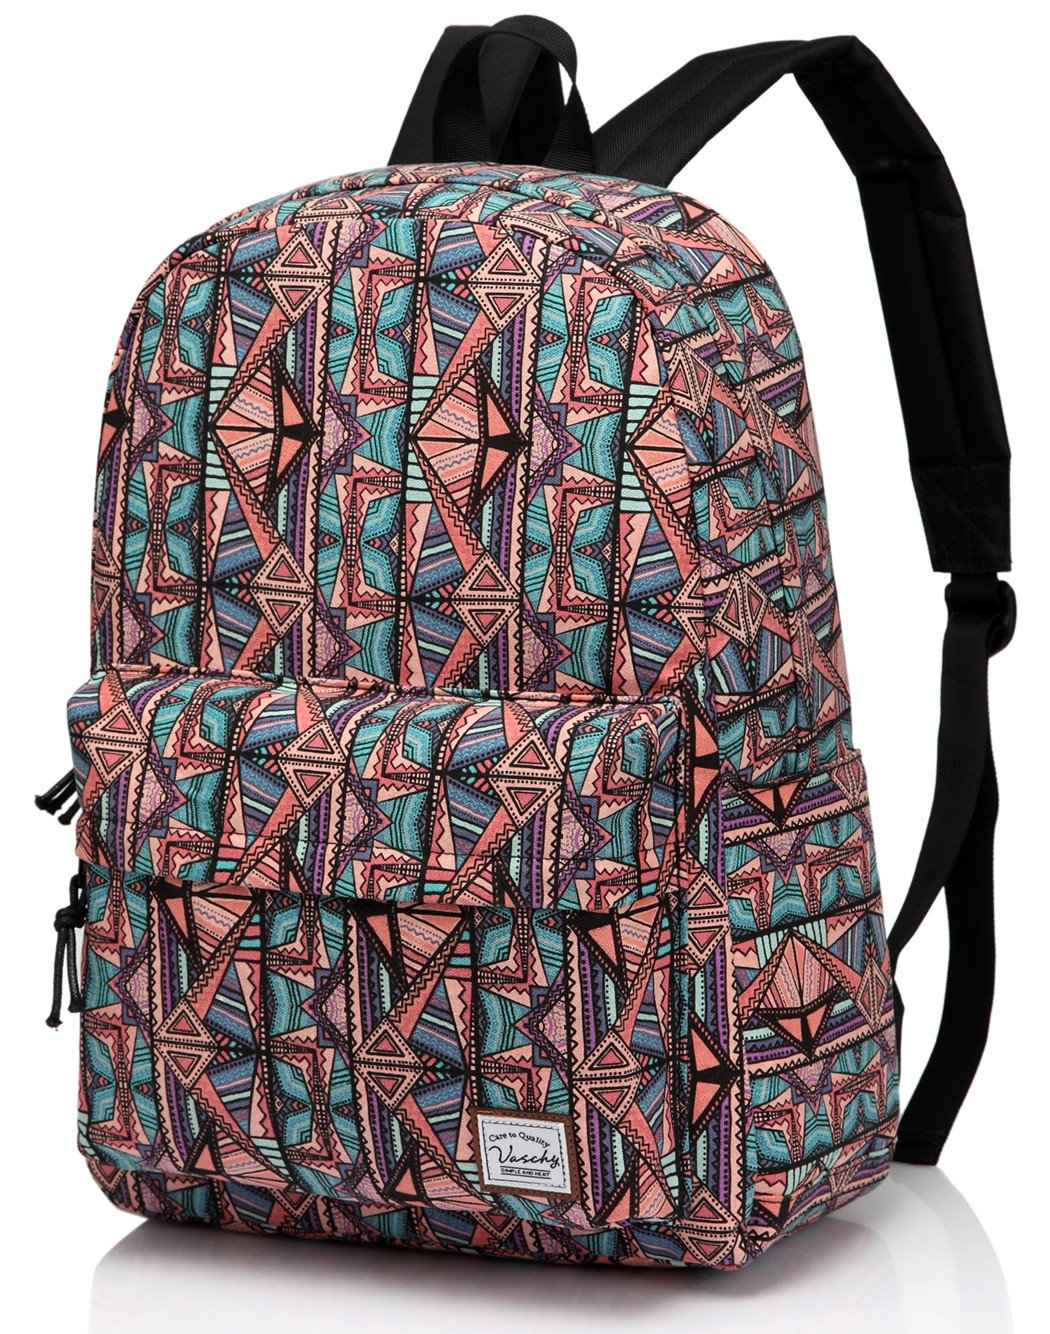 School Backpack for Teen Girls,Fashion Canvas Rucksack BookBag with Padded Laptop Sleeve